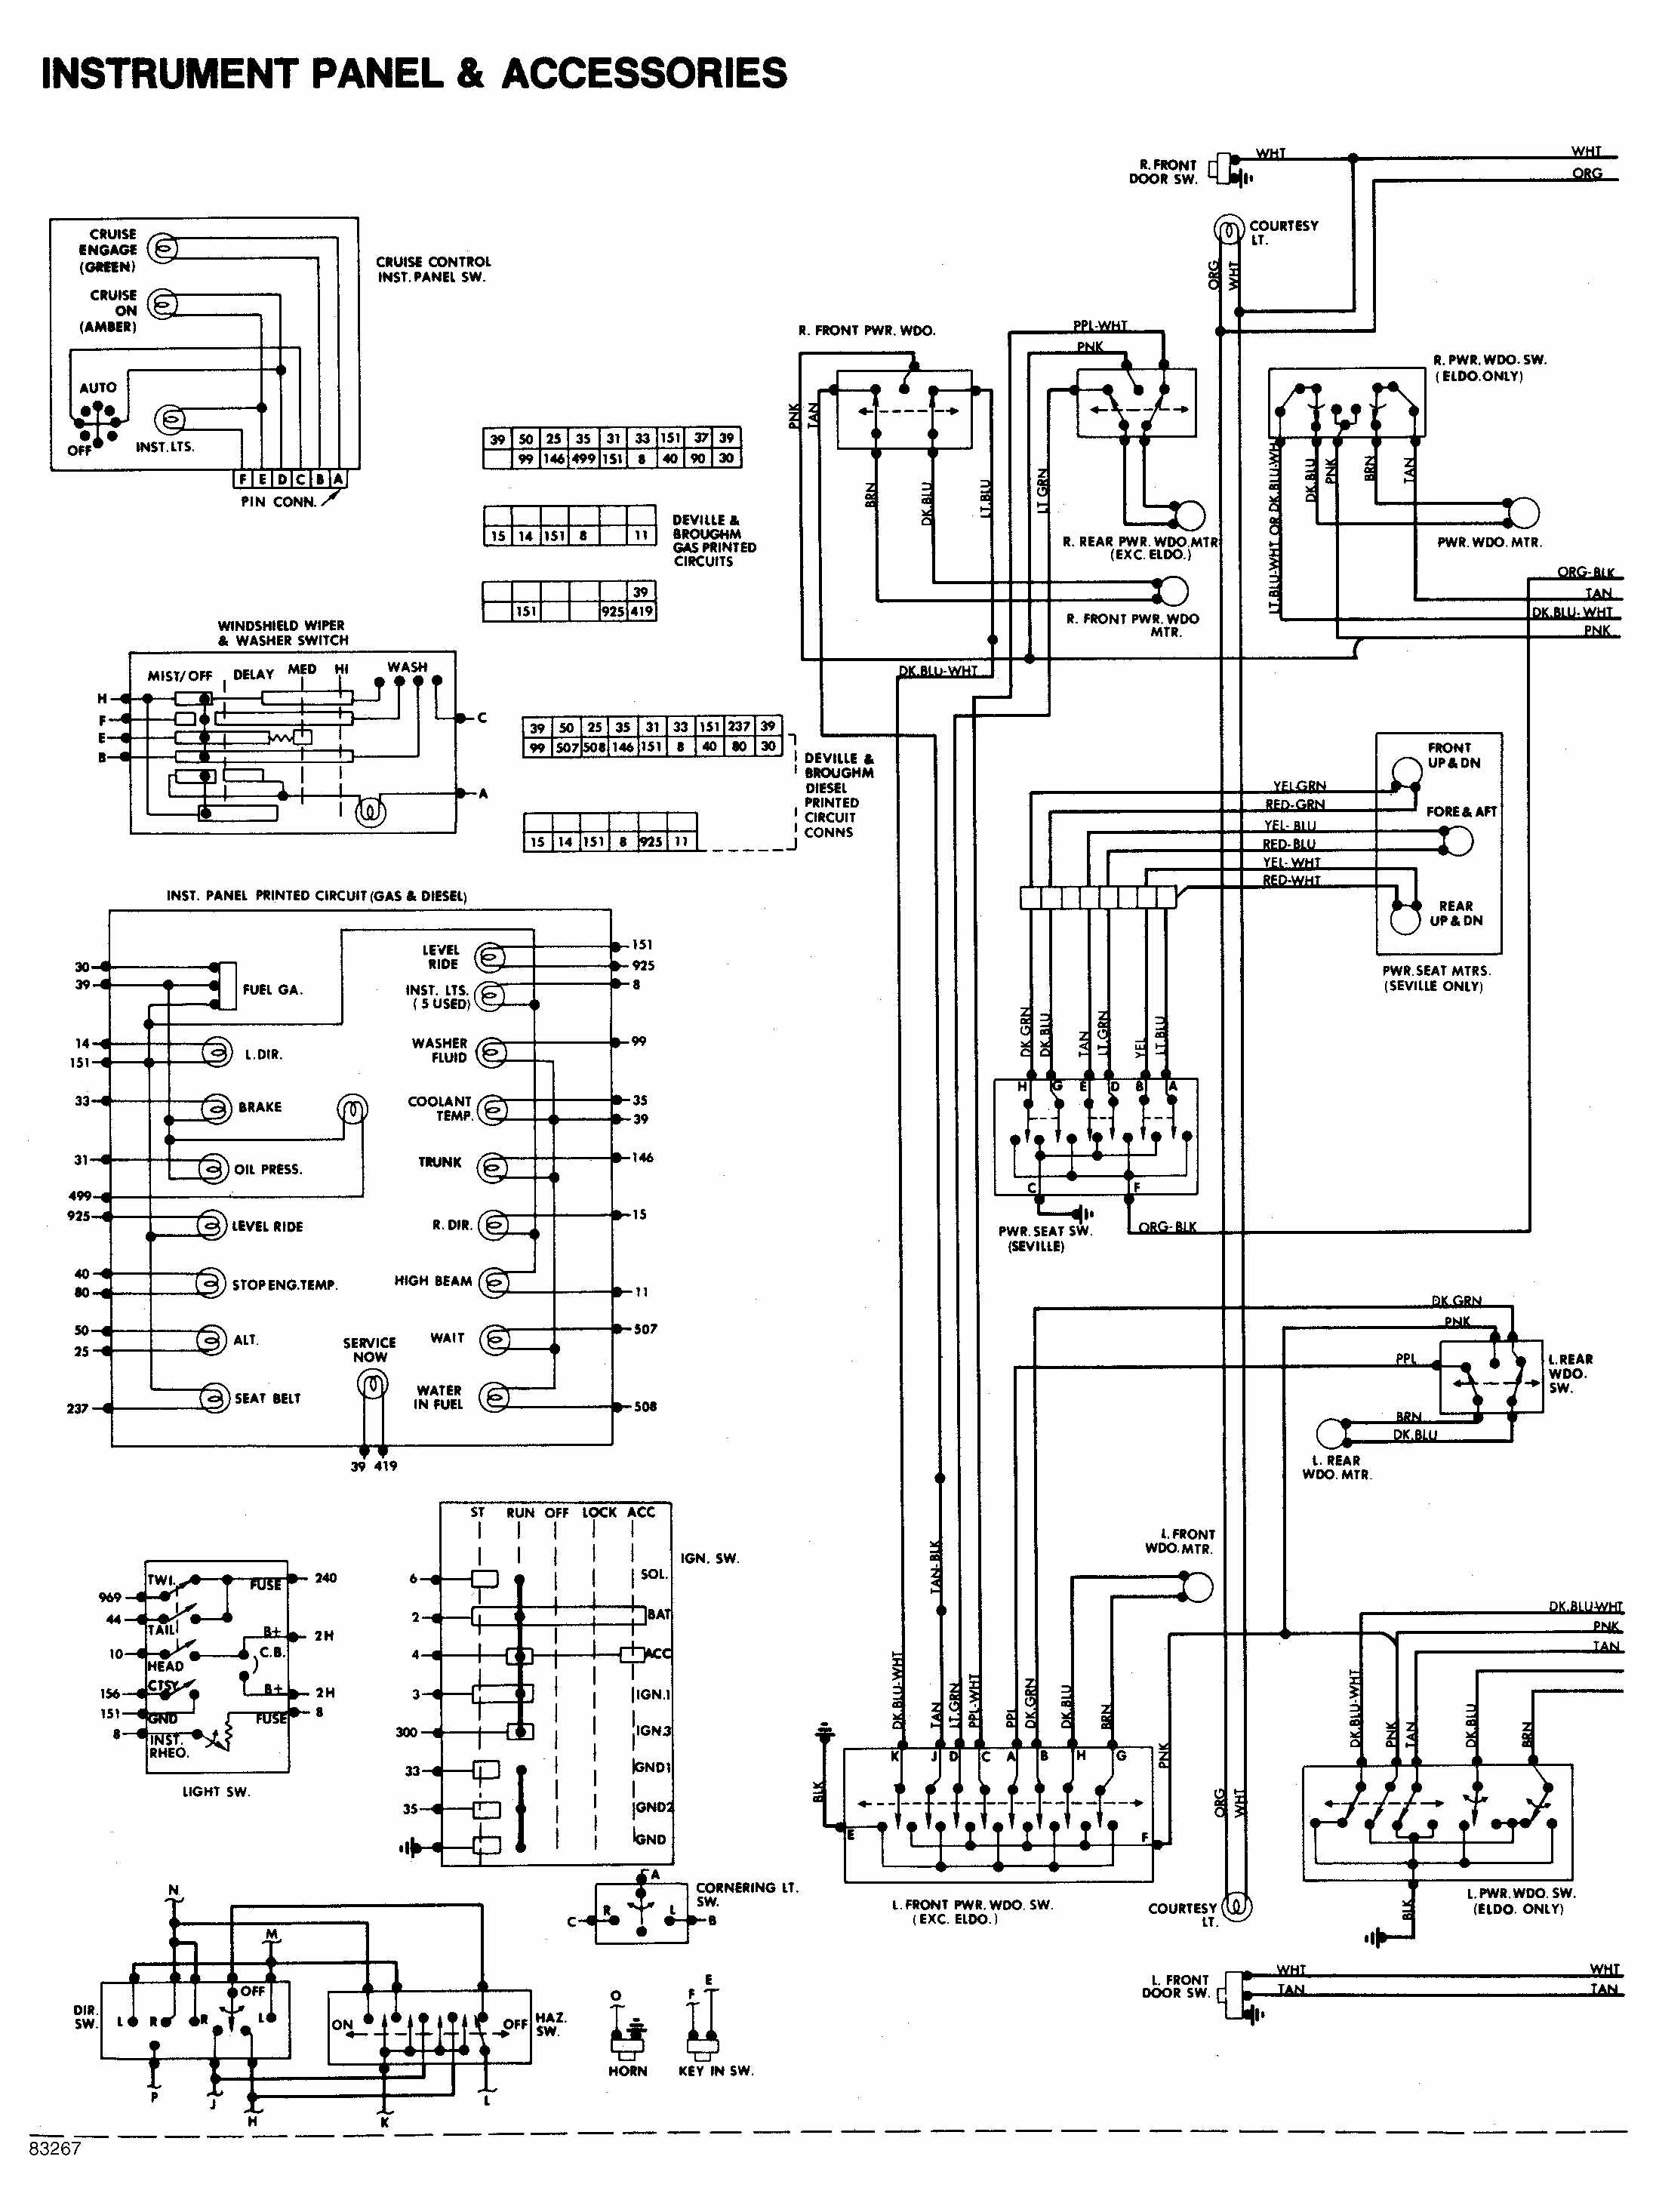 1982 honda accord wiring diagram